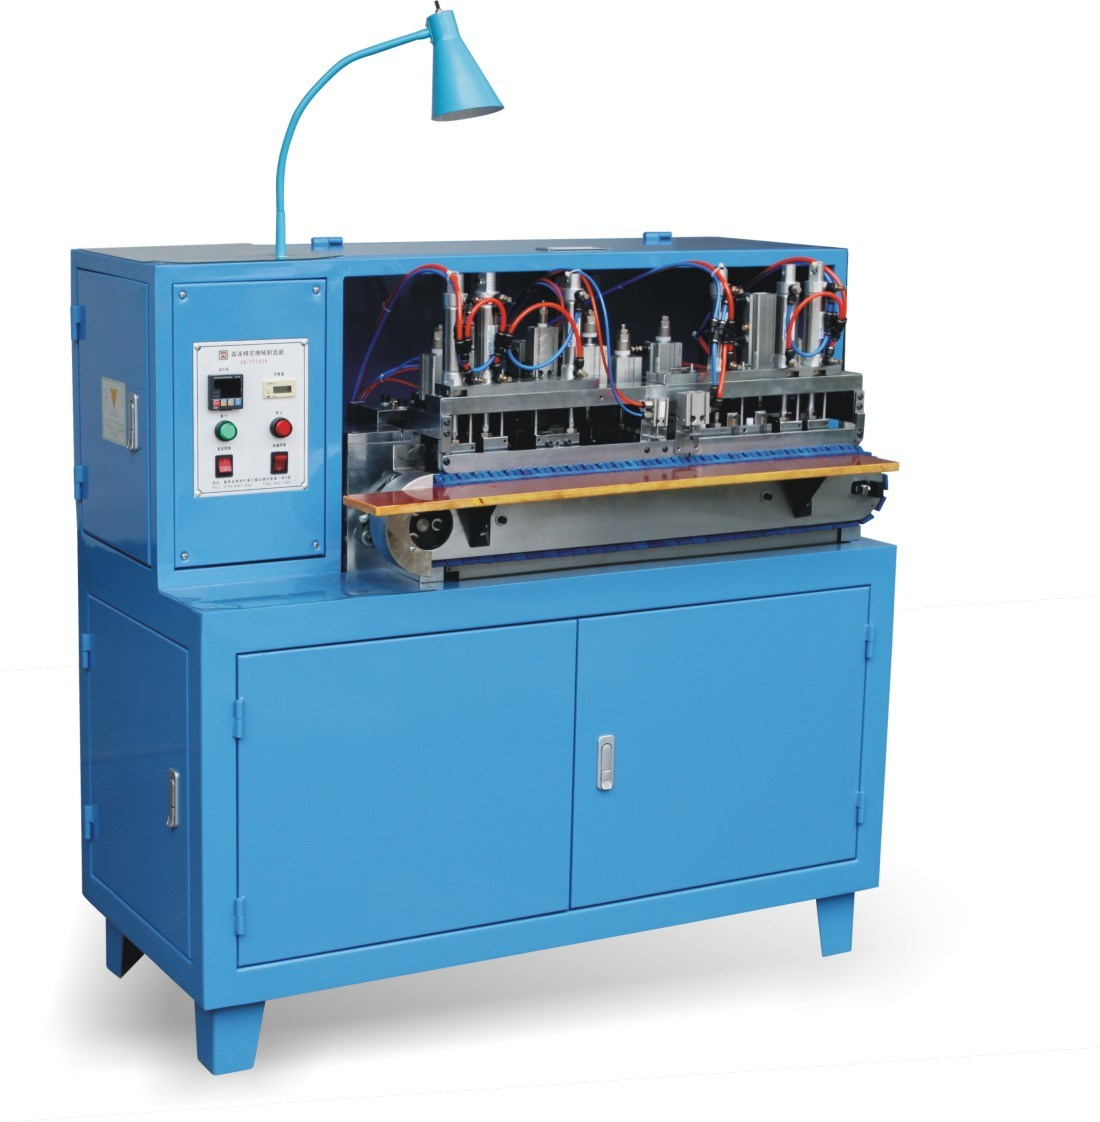 CE Certificate of Wire Stripping, Twisting, &Soldering Machine